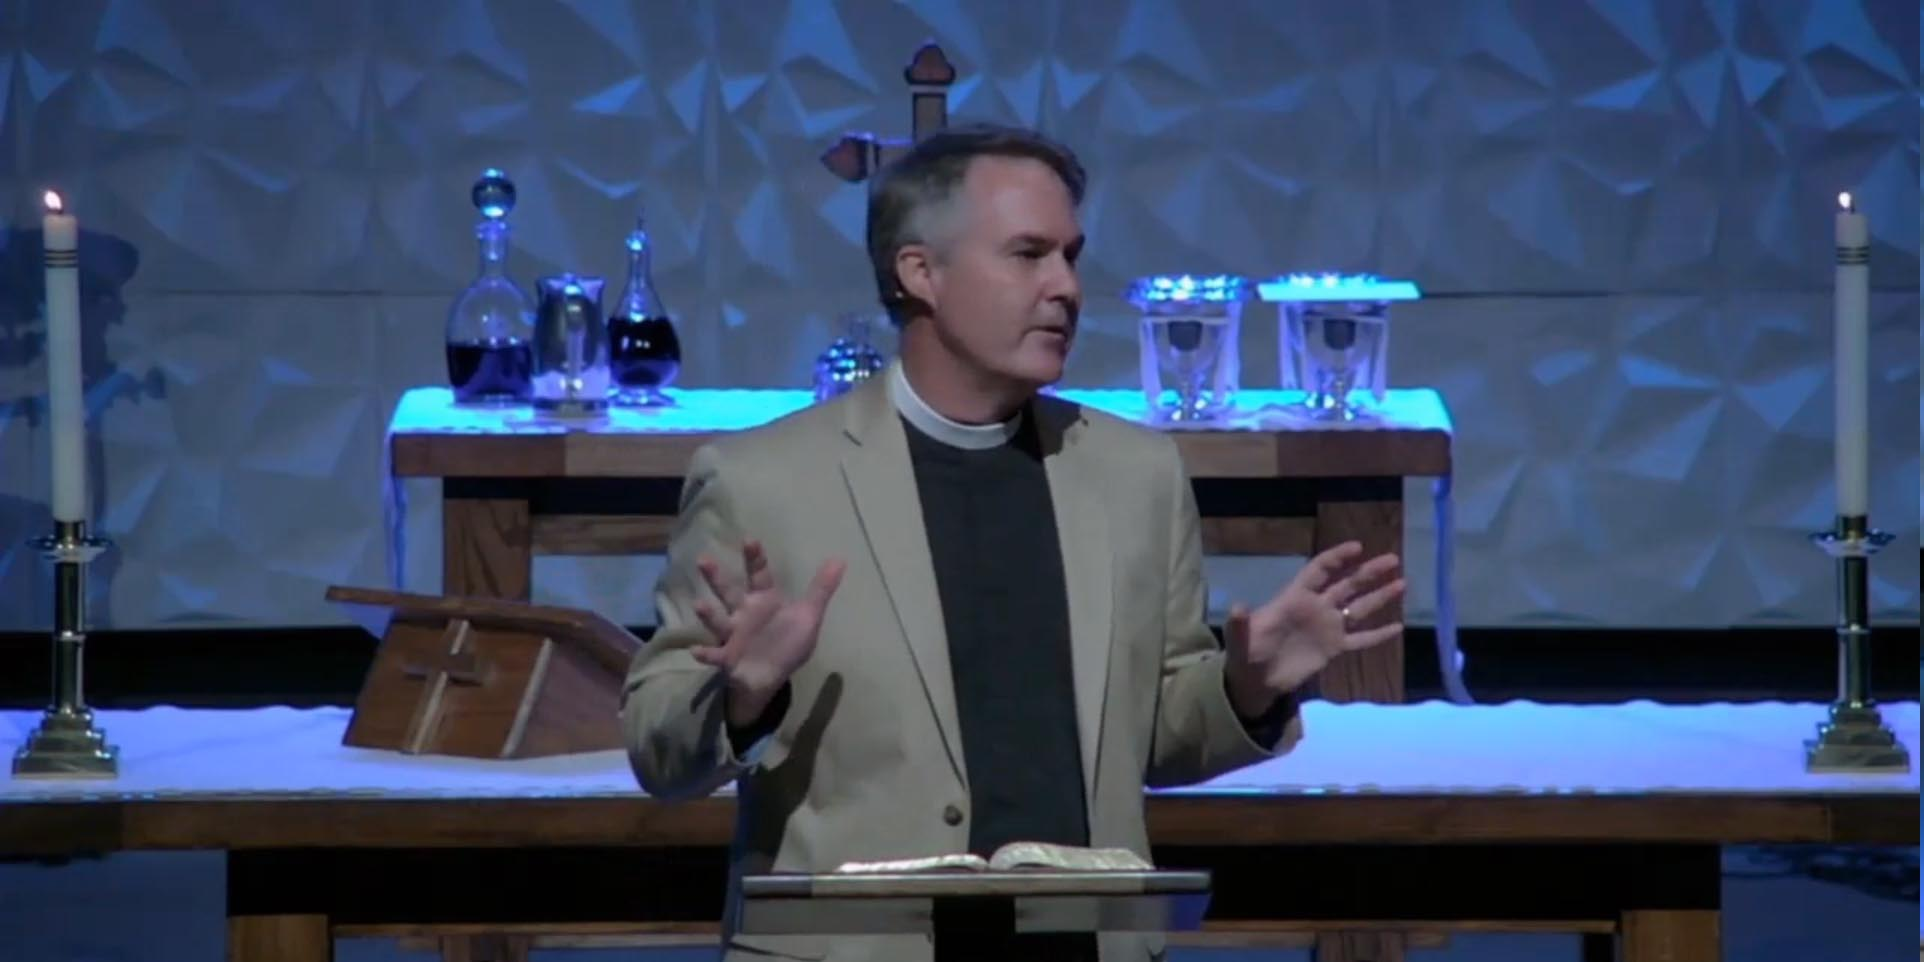 Resurrected Life Brings Living Hope - Sermon by the Rev. Charlie Holt